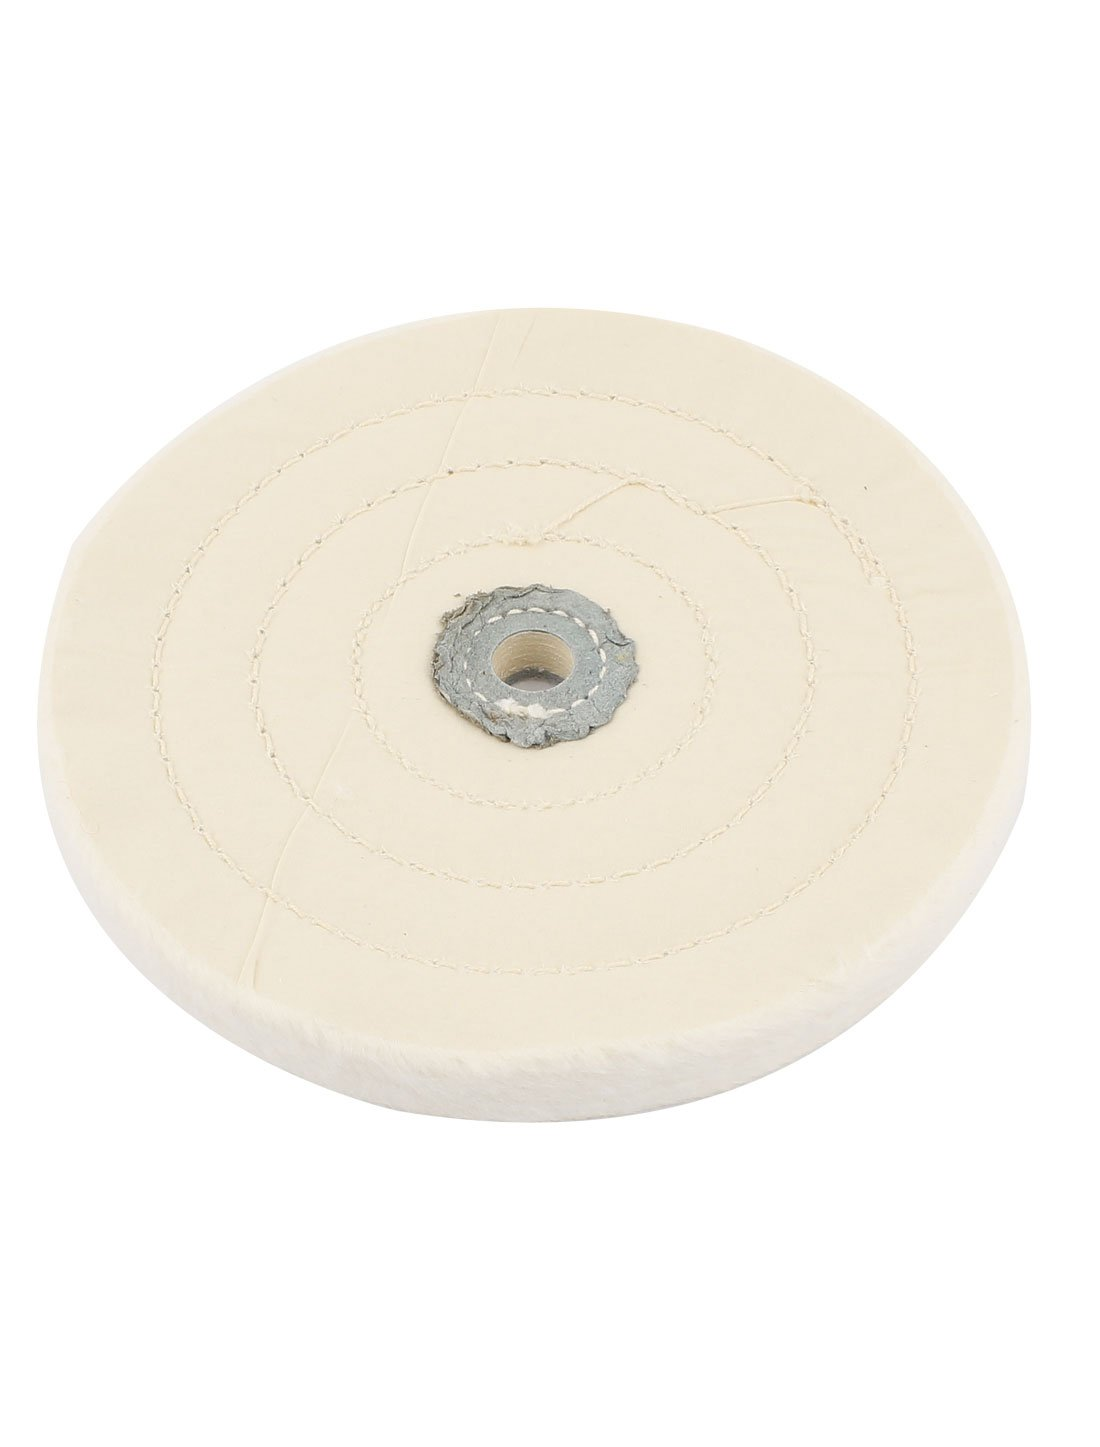 Aexit White 1//2 Grinder Accessories x 6 50 Ply Round Shape Polish Buffing Wheel Cutoff Wheels Cotton Pad